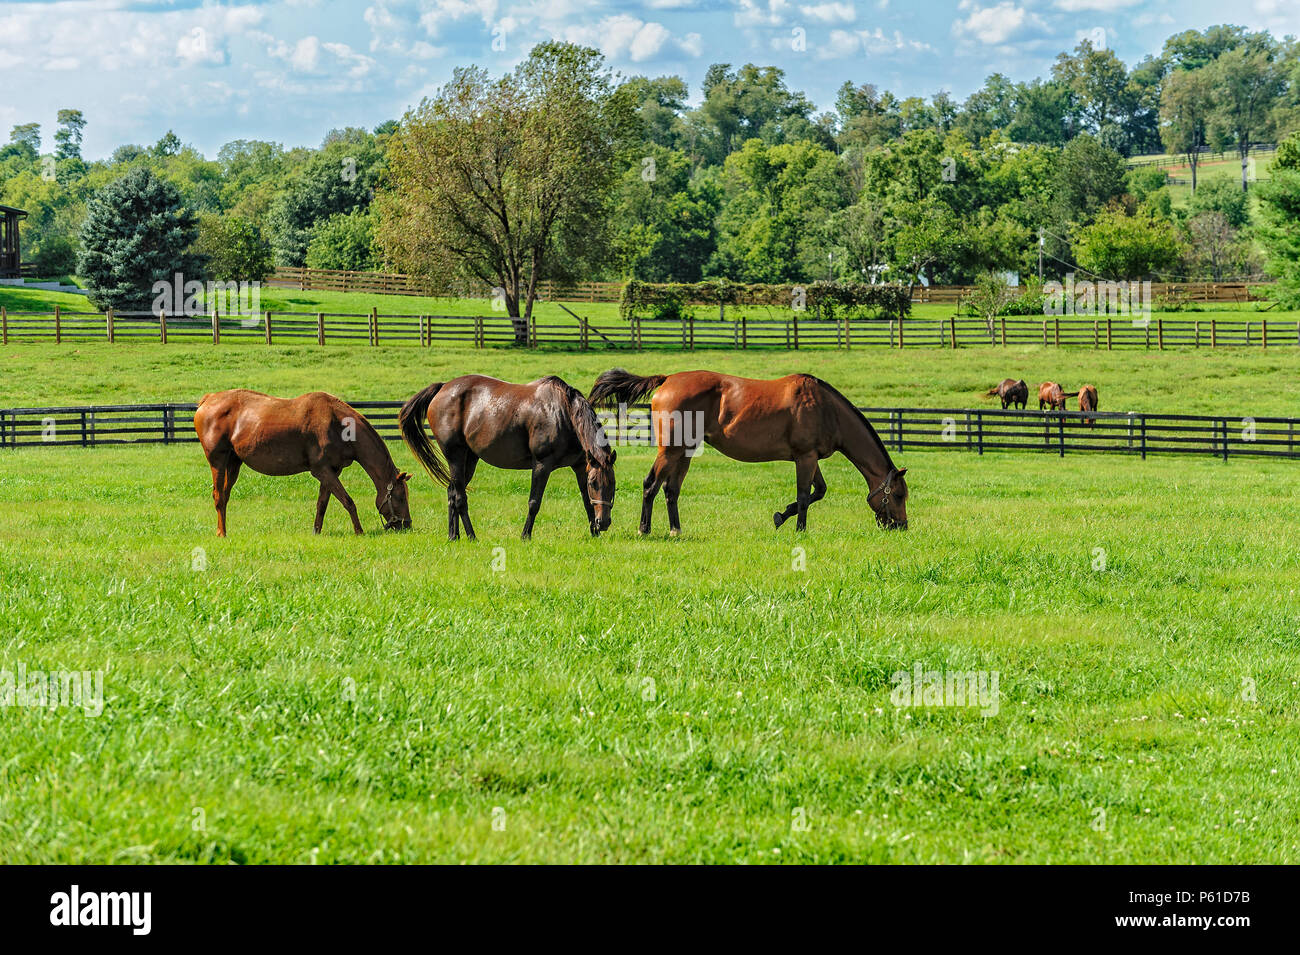 Thoroughbred Horses on a farm in Kentucky - Stock Image